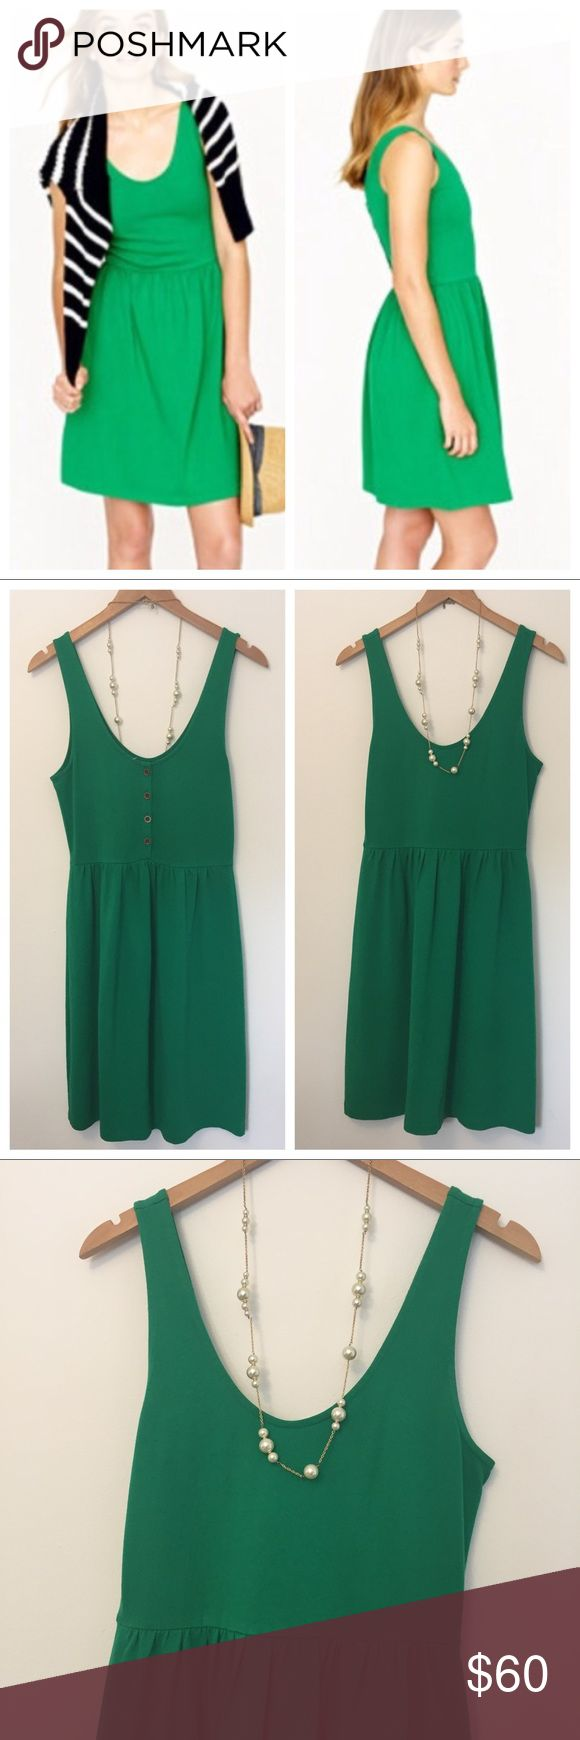 """J. Crew • Villa Tank Dress NWOT As easy as it gets. J. Crews cotton knit dress boasts a button-up back and a fitted bodice with a flirty skirt. Perfect for the beach or a backyard barbecue, this breezy little piece is the perfect alternative to shorts and a tee. No flaws, NWOT.   Cotton/rayon jersey. Falls to knee, 36 1/2"""" from high point of shoulder.  Bra keeps. Back button closure. Machine wash. J. Crew Dresses"""